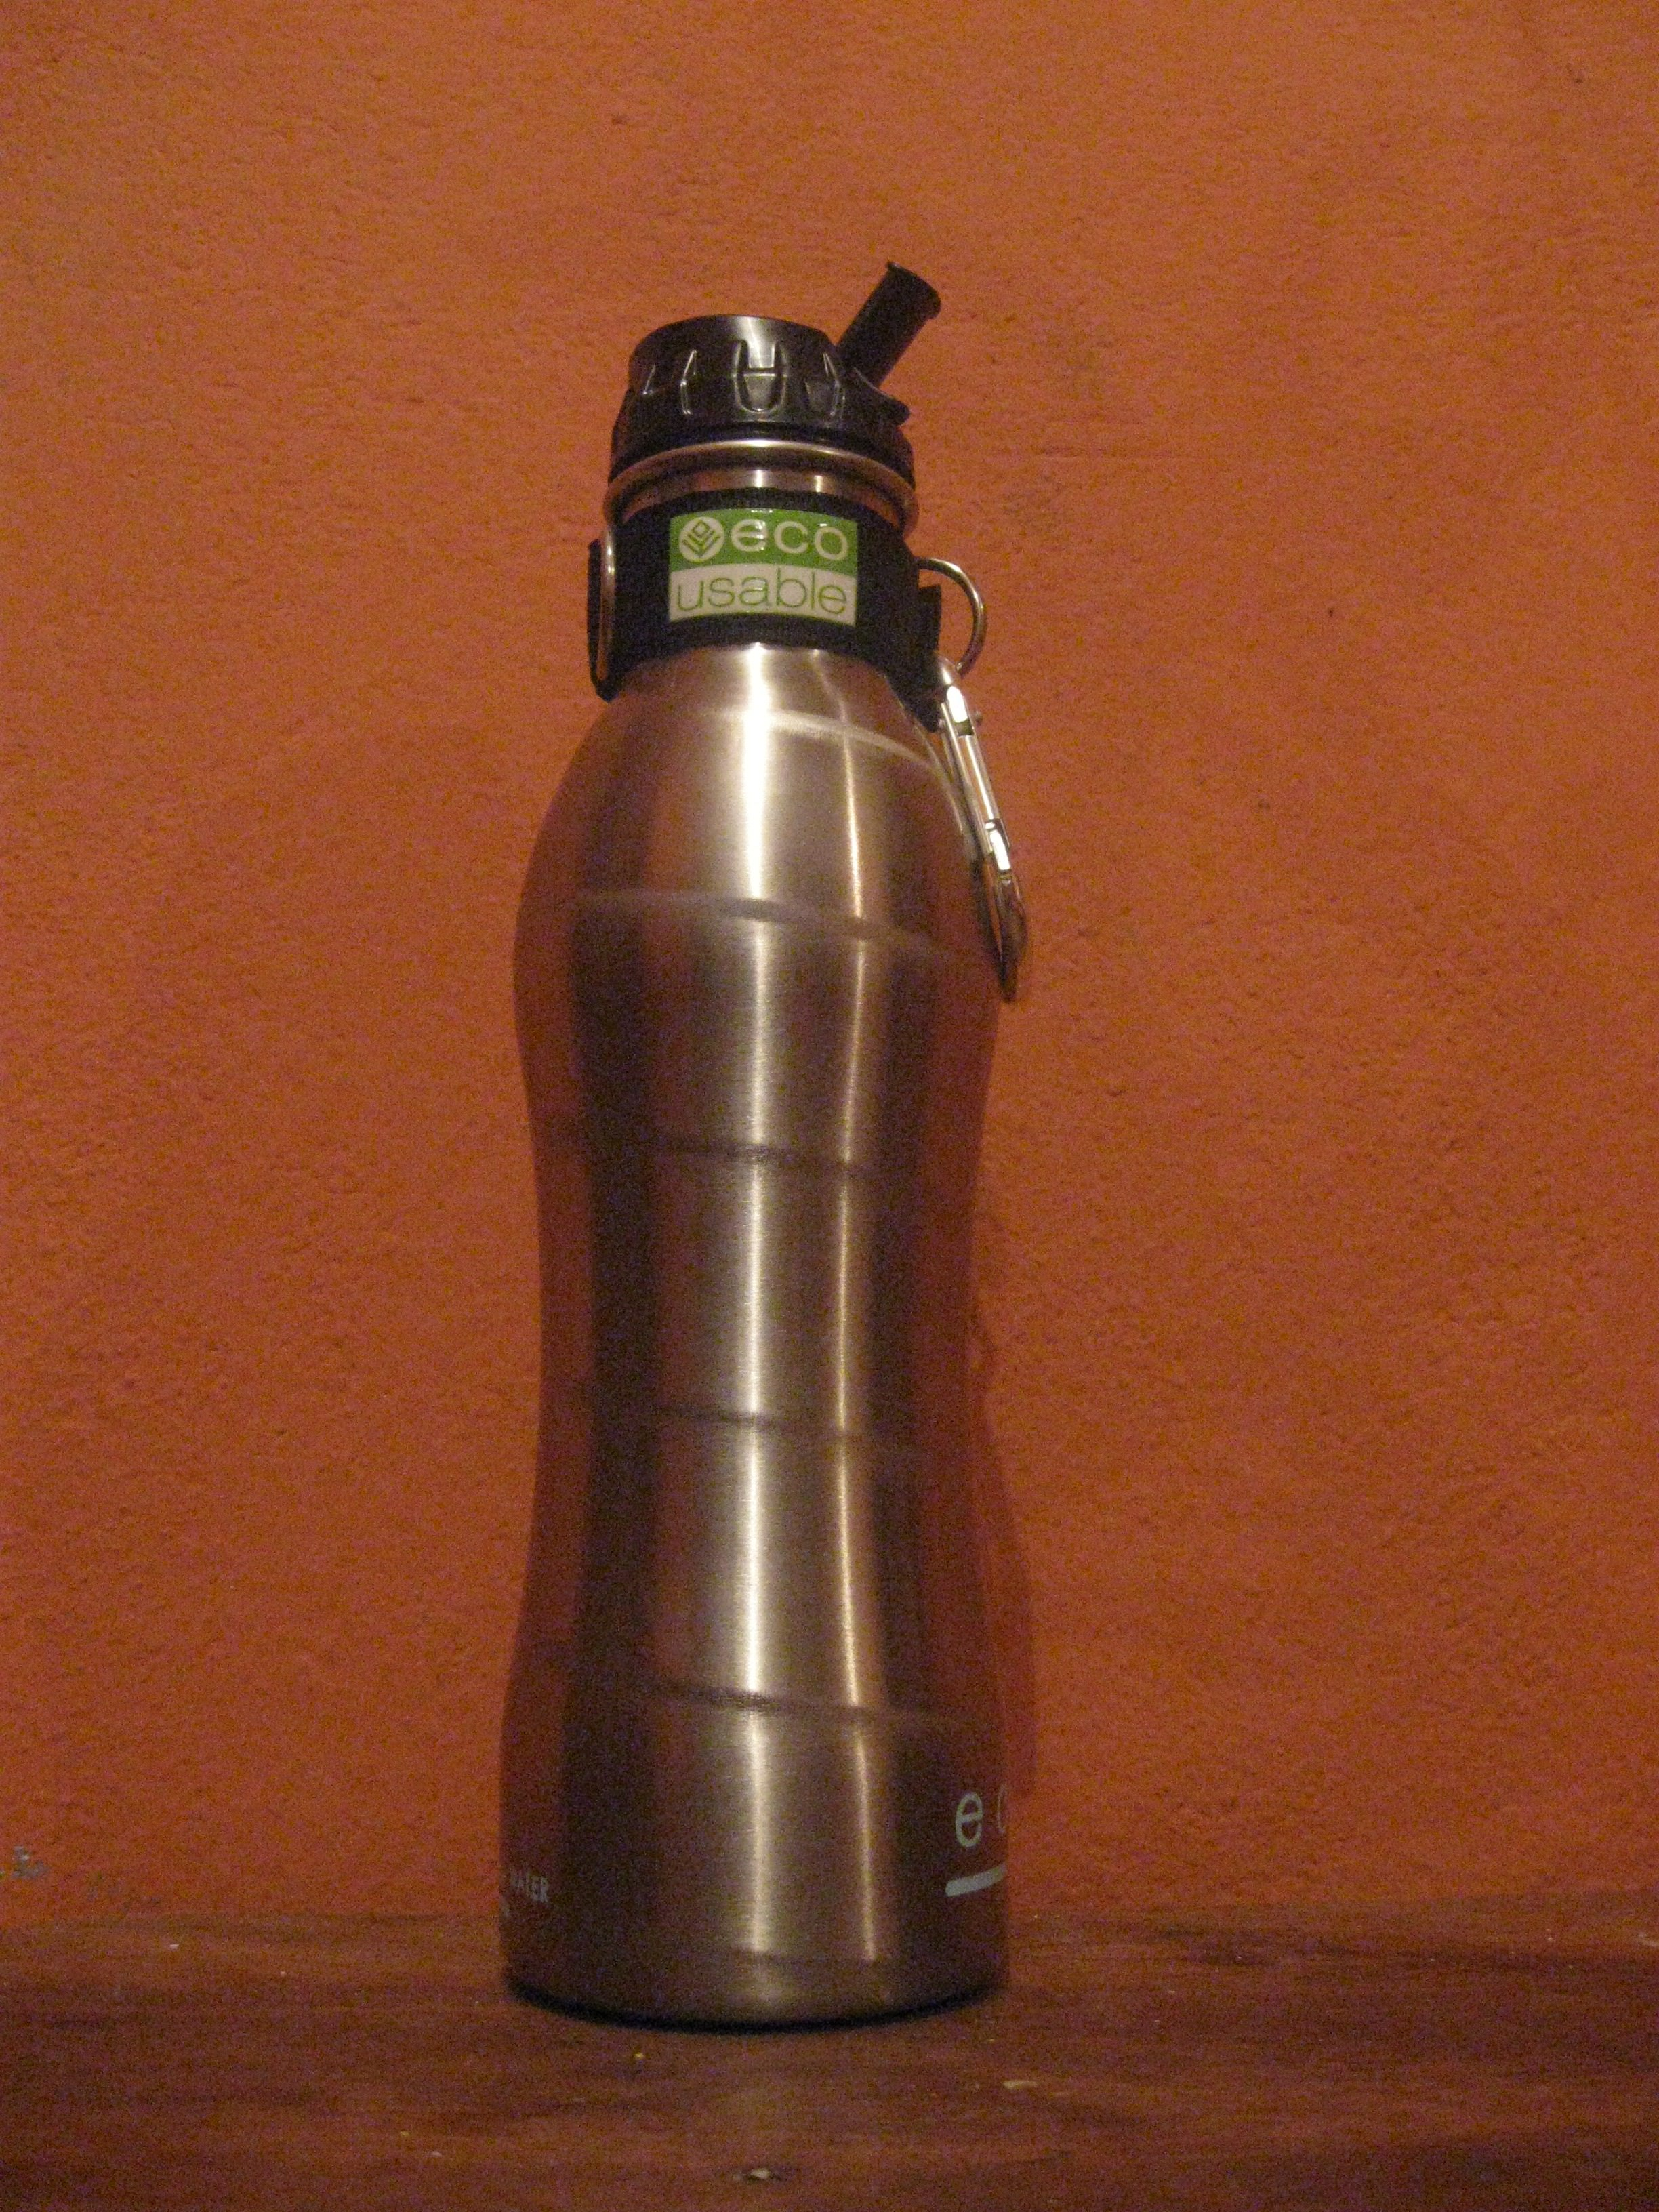 These EcoUsable bottles are a little bulky, but great for water filtering.